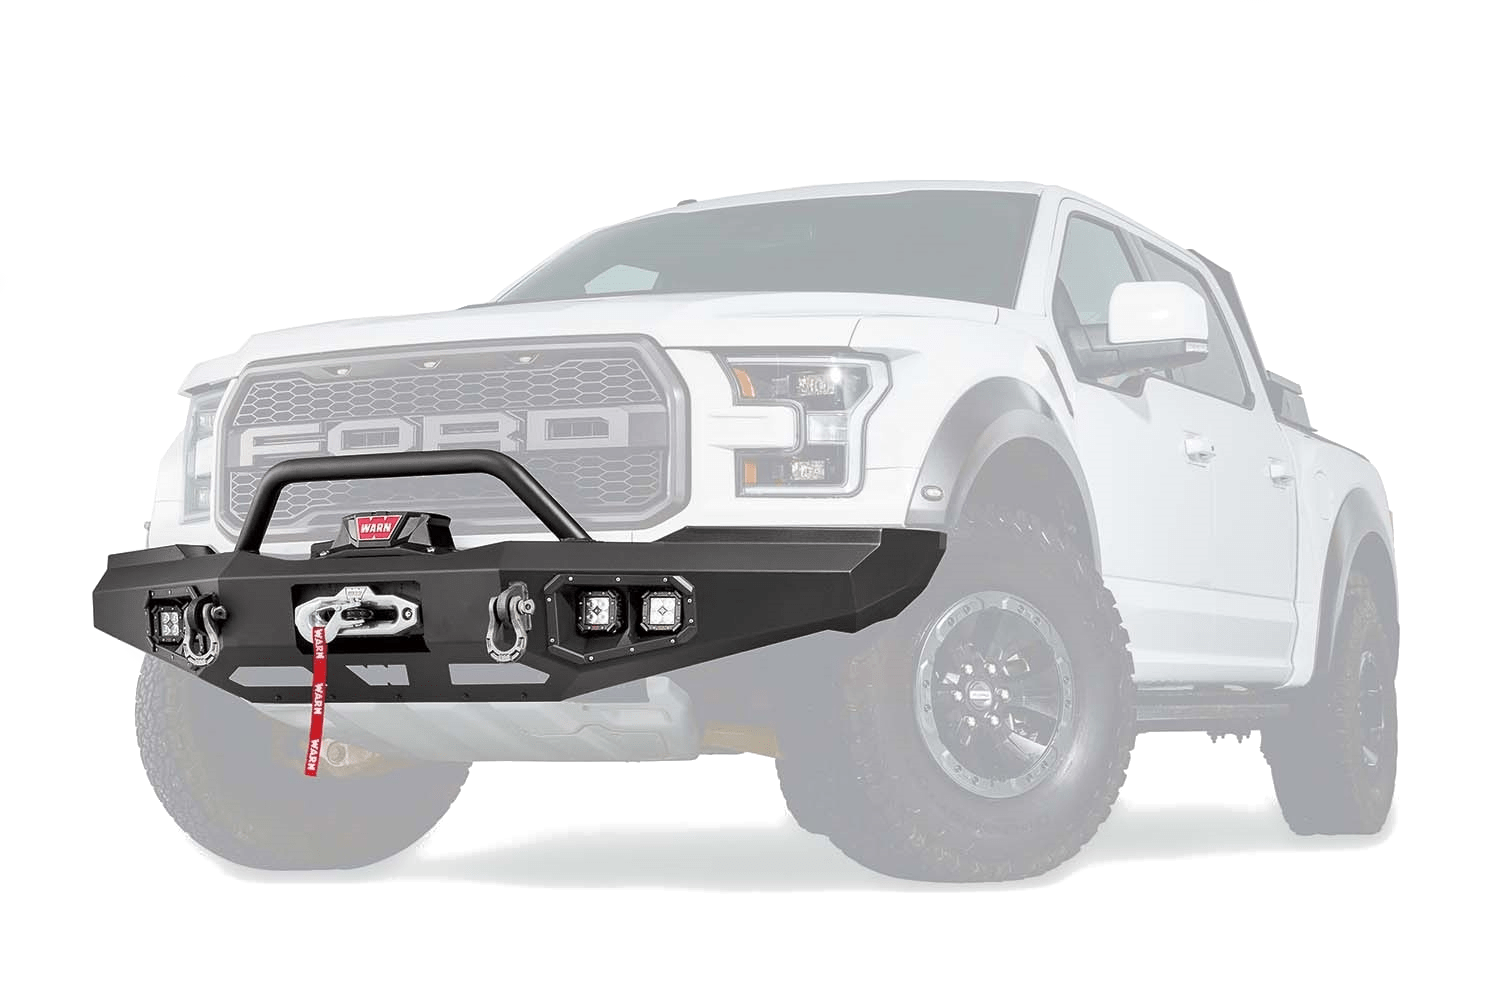 warn truck & SUV bumpers ford raptor ascent front bumper 99850 warn industries bumpers